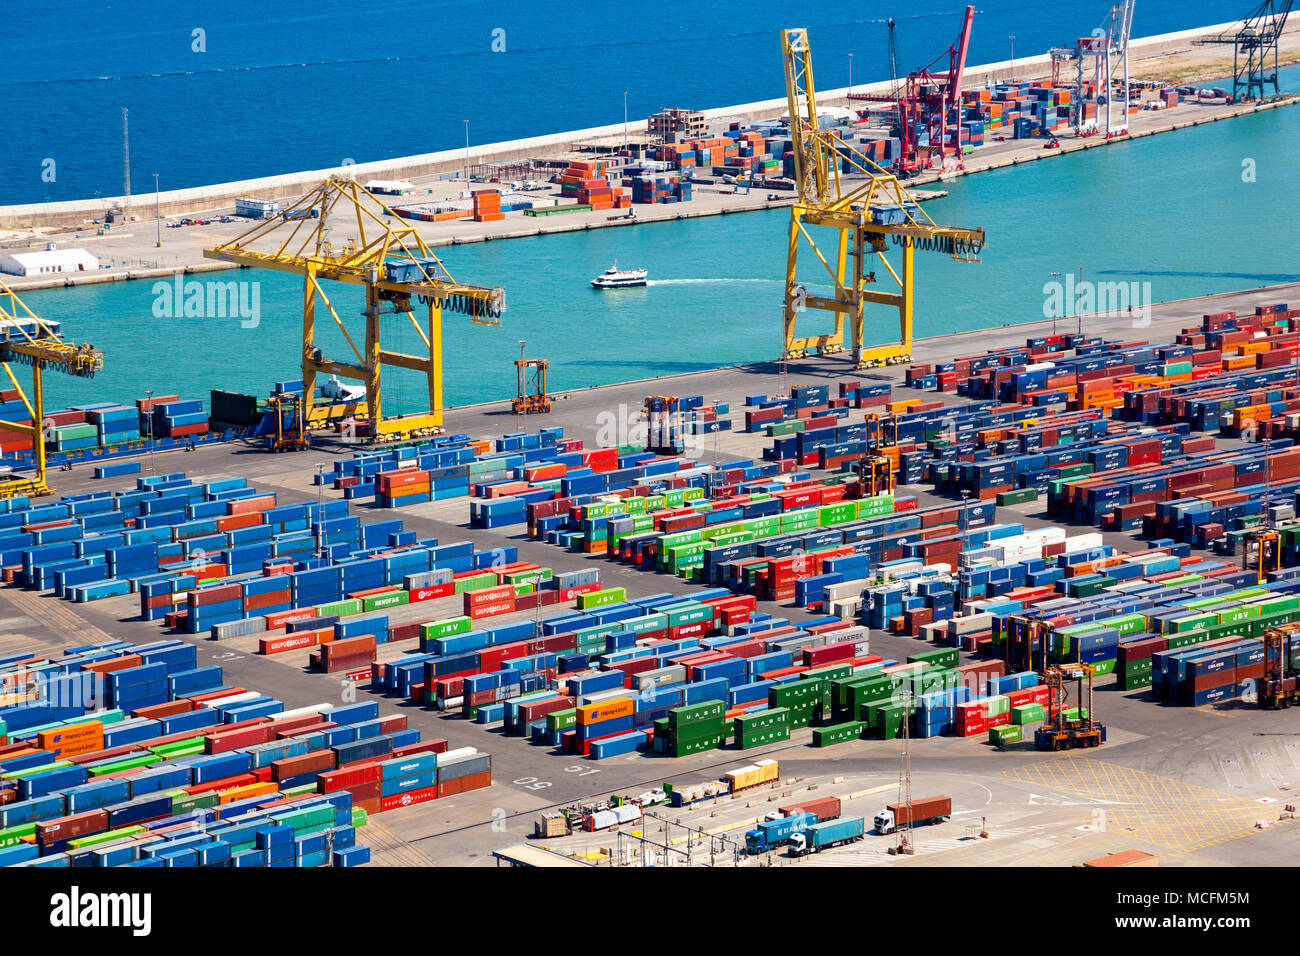 Yellow cranes and shipping containers at the Port of Barcelona, view from Montjuïc, Barcelona, Spain - Stock Image